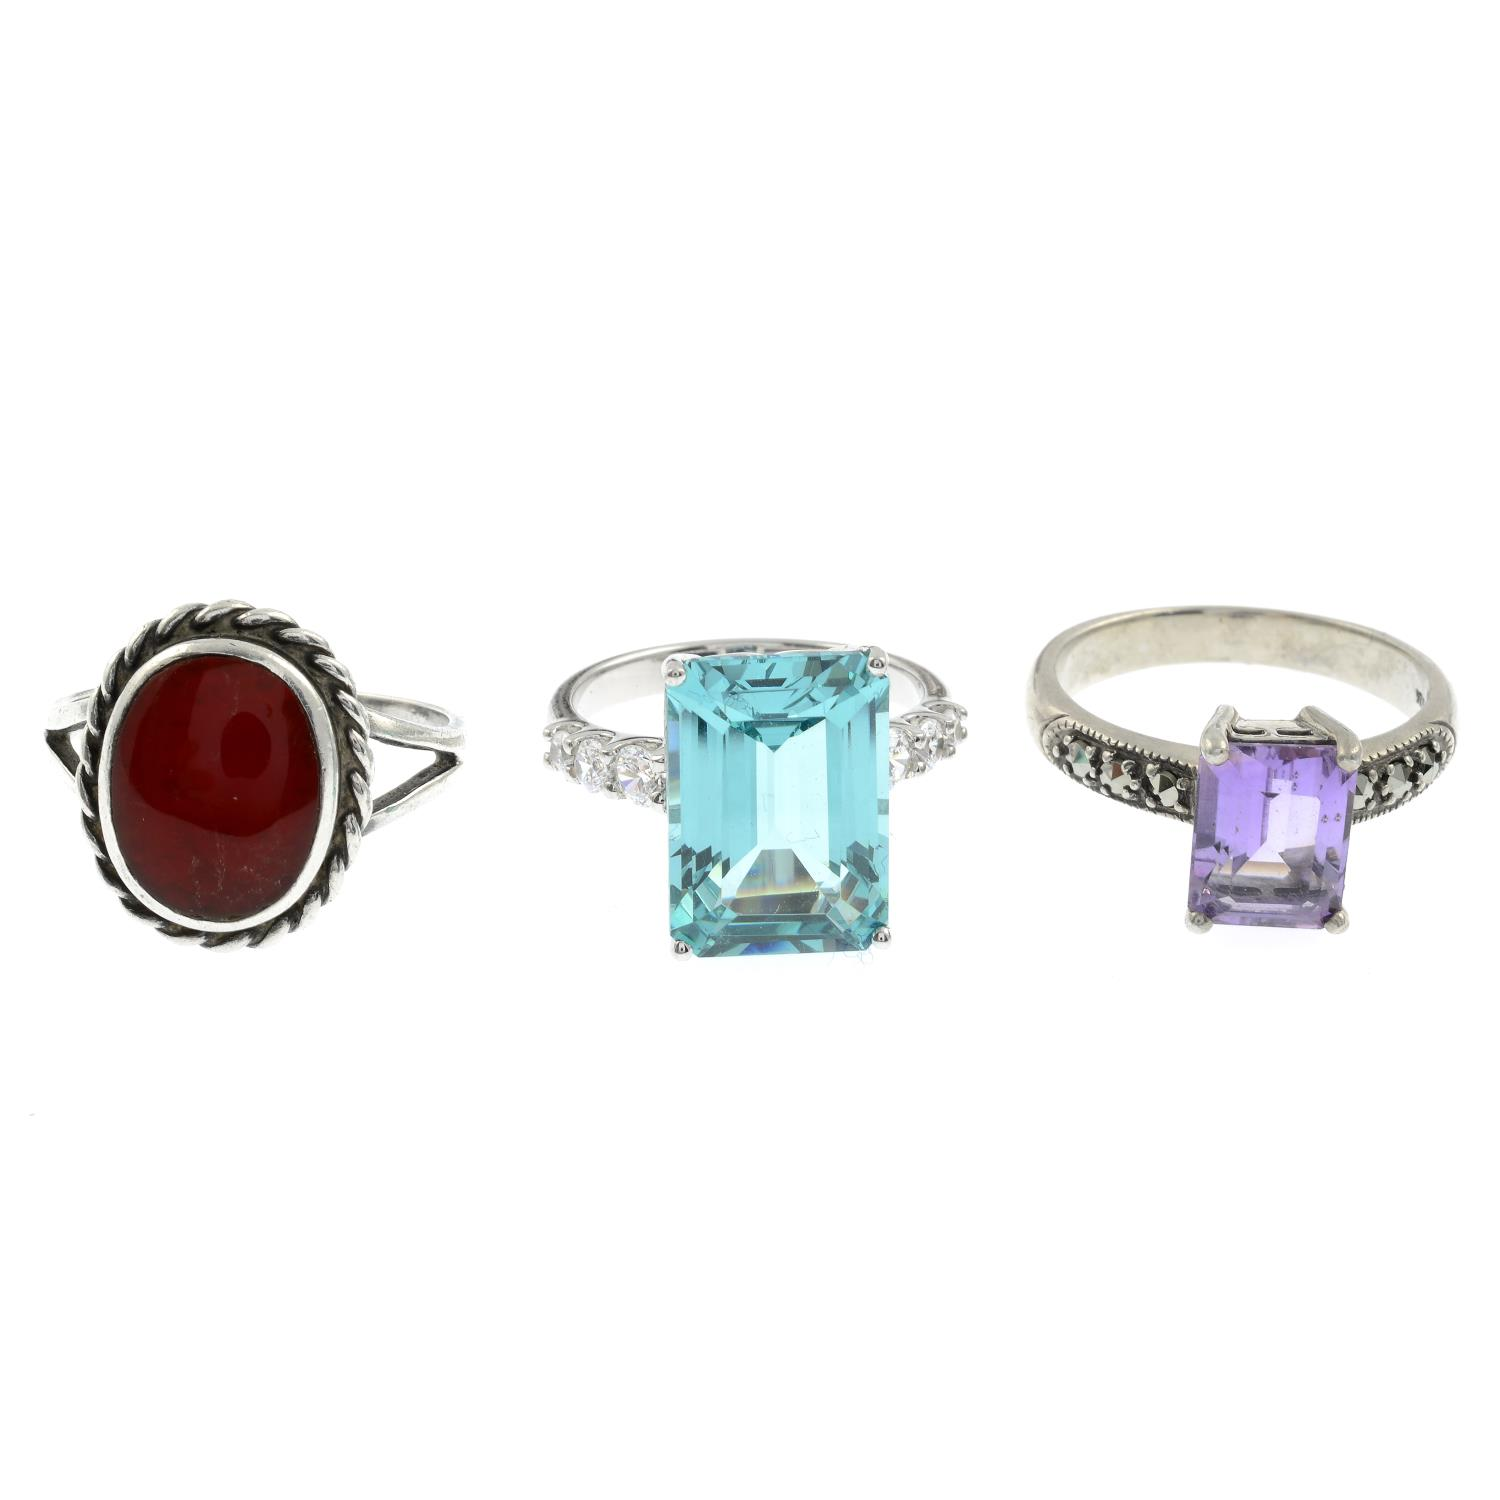 A selection of mainly gem-set rings, to include a carved rose quartz ring.